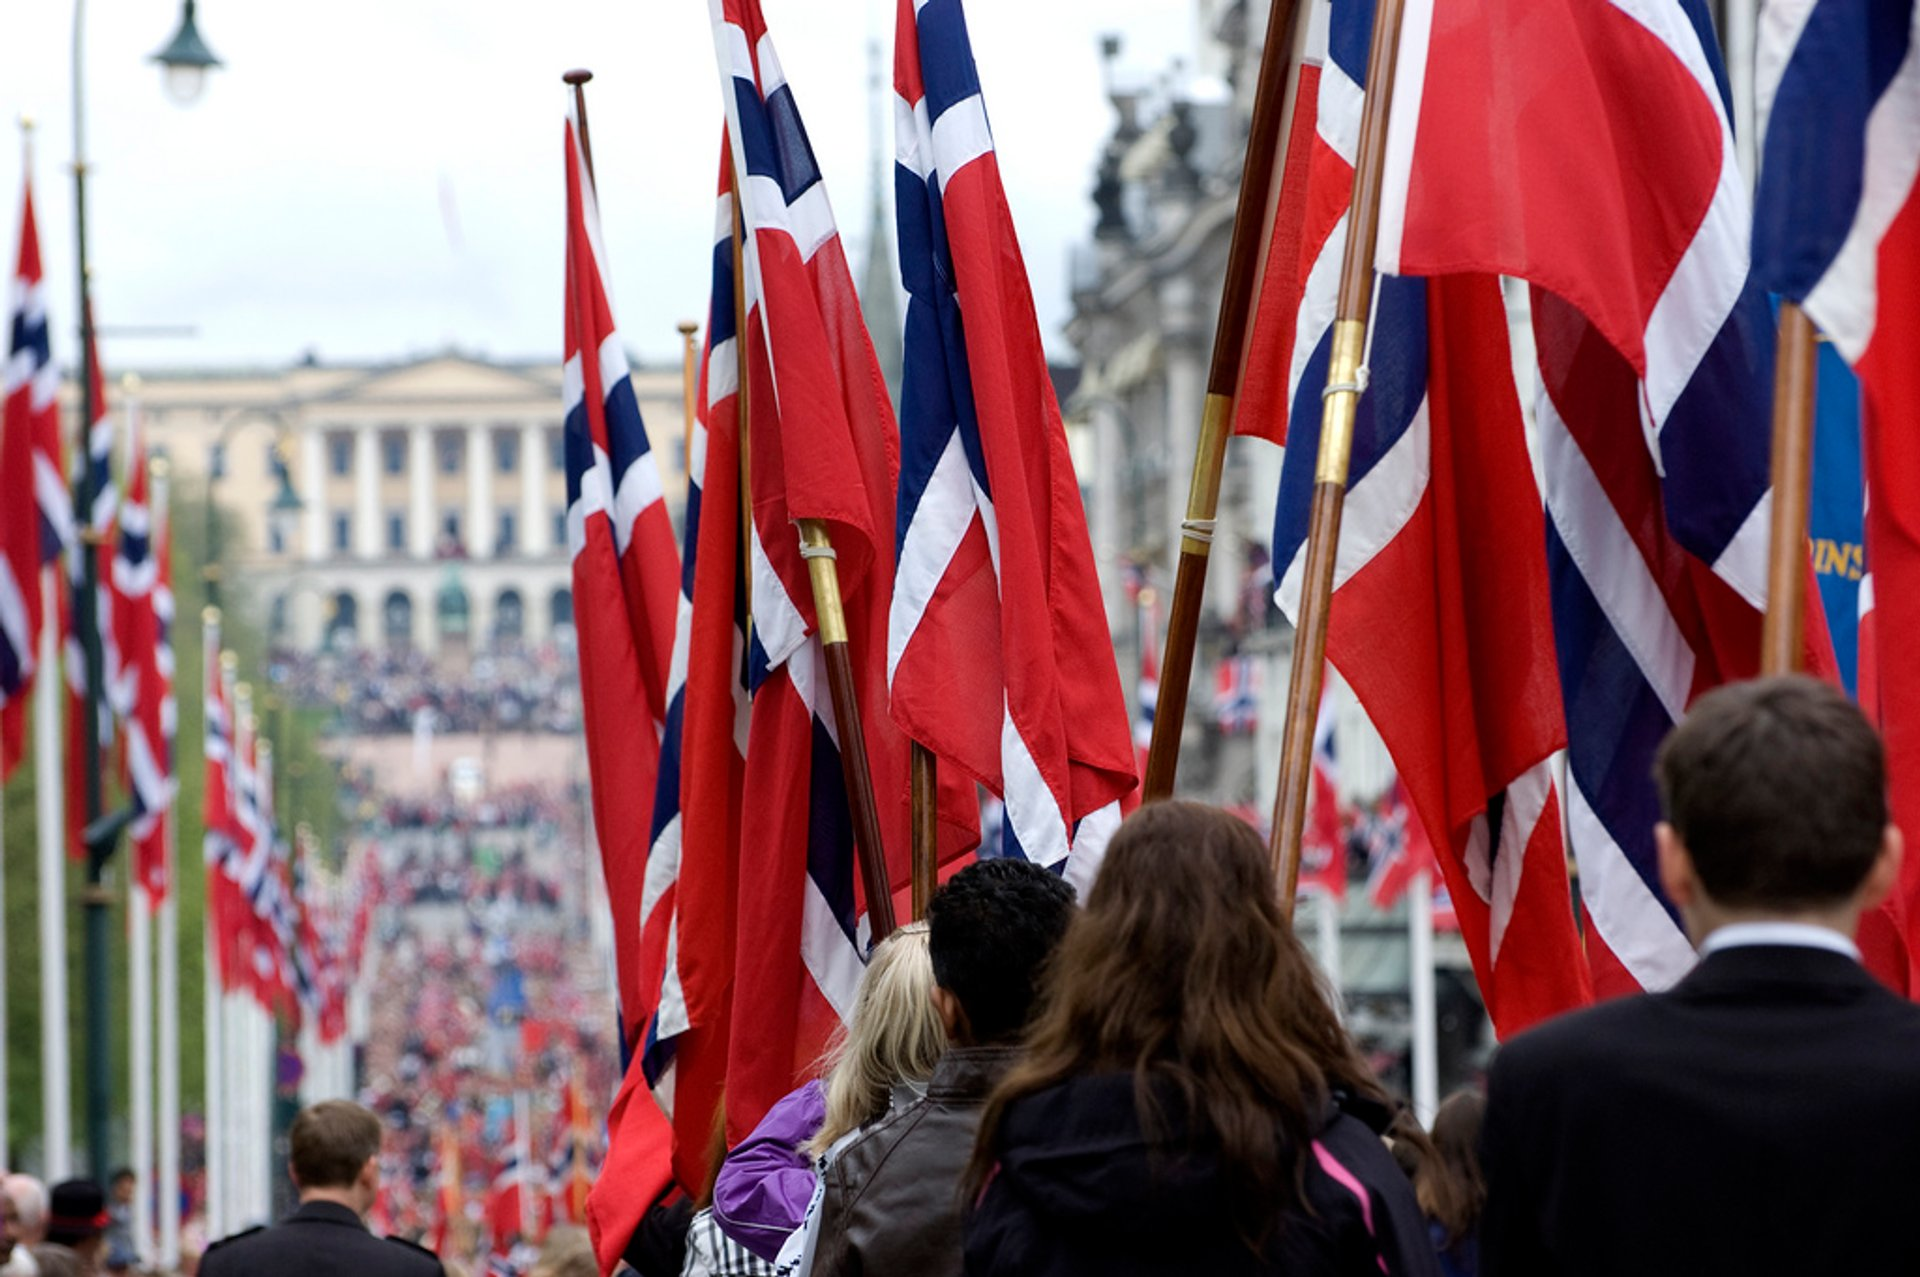 Norway's National Day in Norway 2019 - Best Time